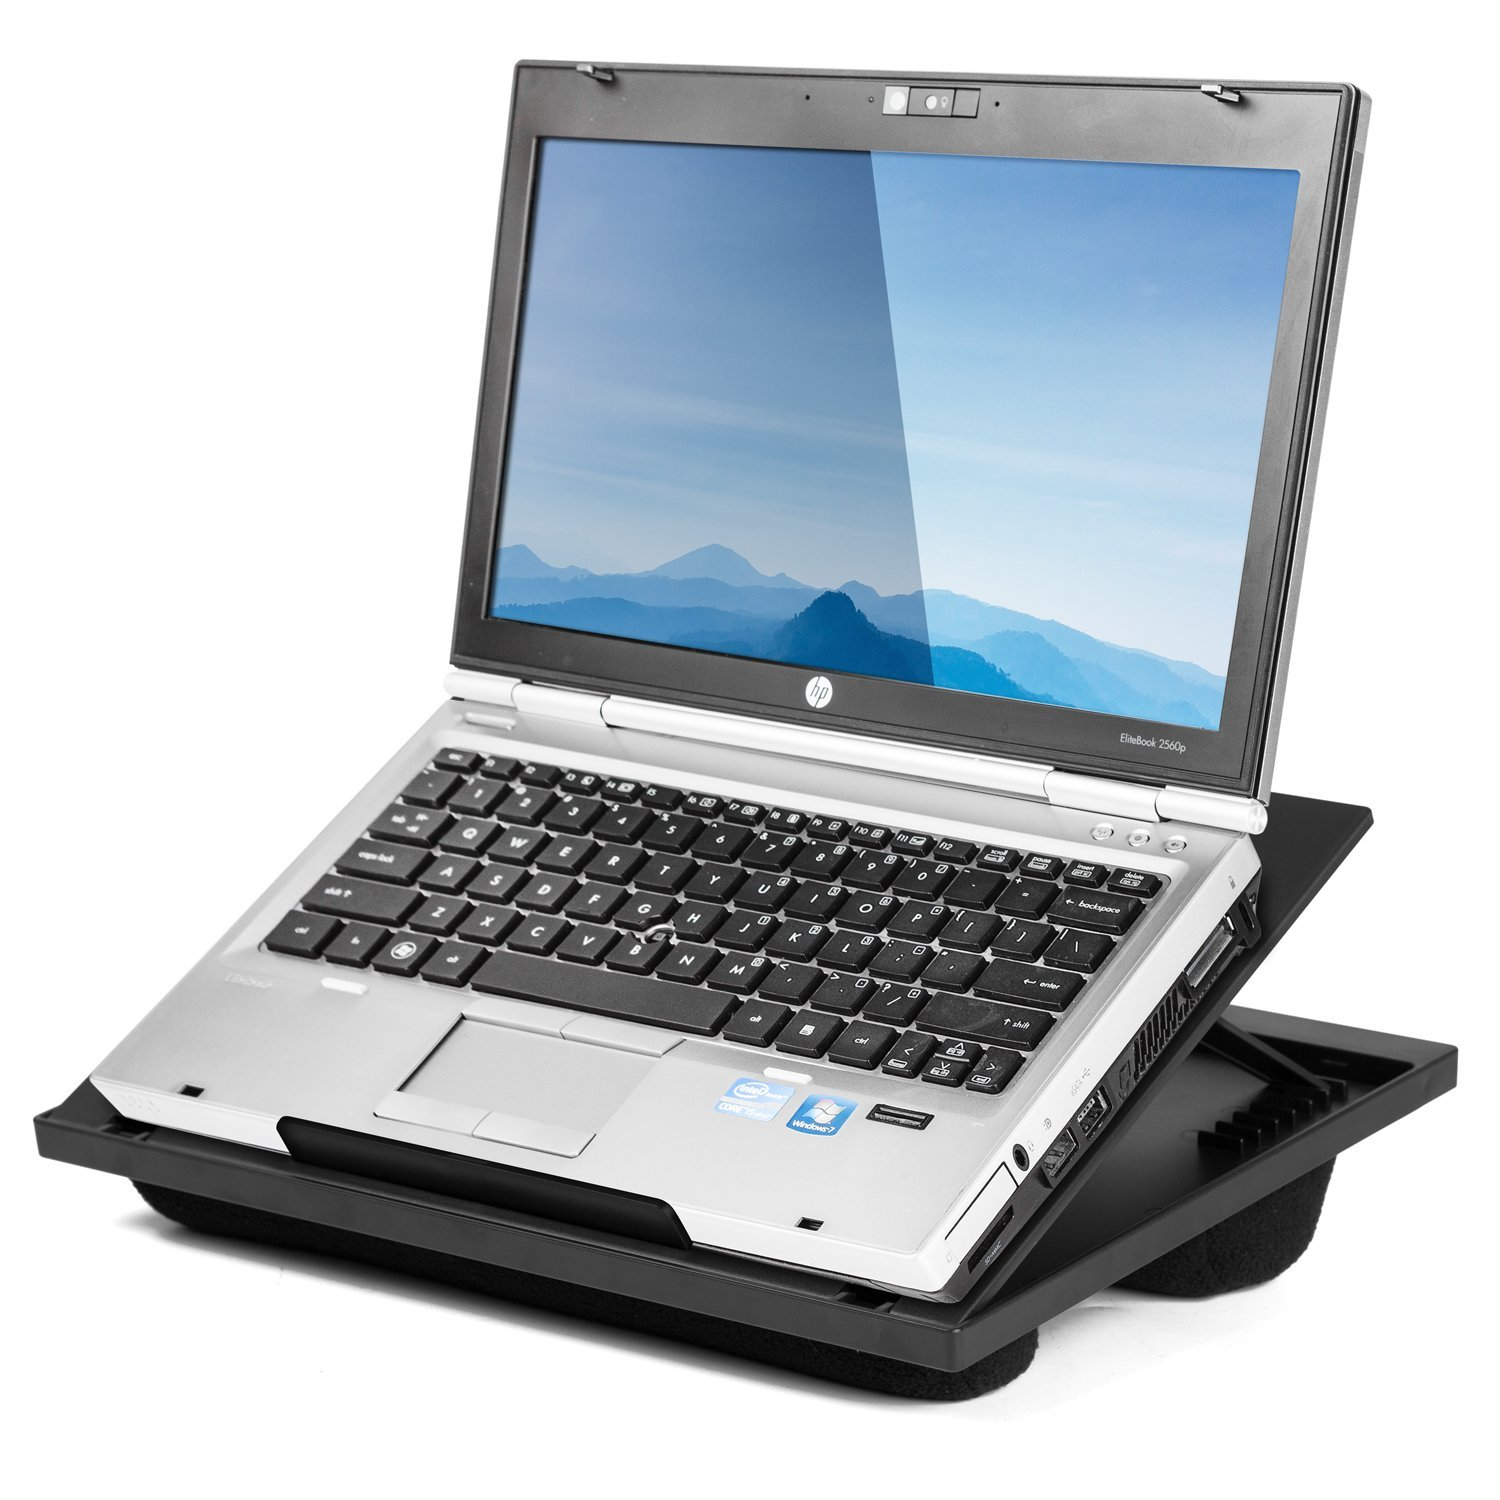 Halter Lap Desk Laptop Stand with 8 Adjustable Angles and Dual Microbead Bolster Cushions